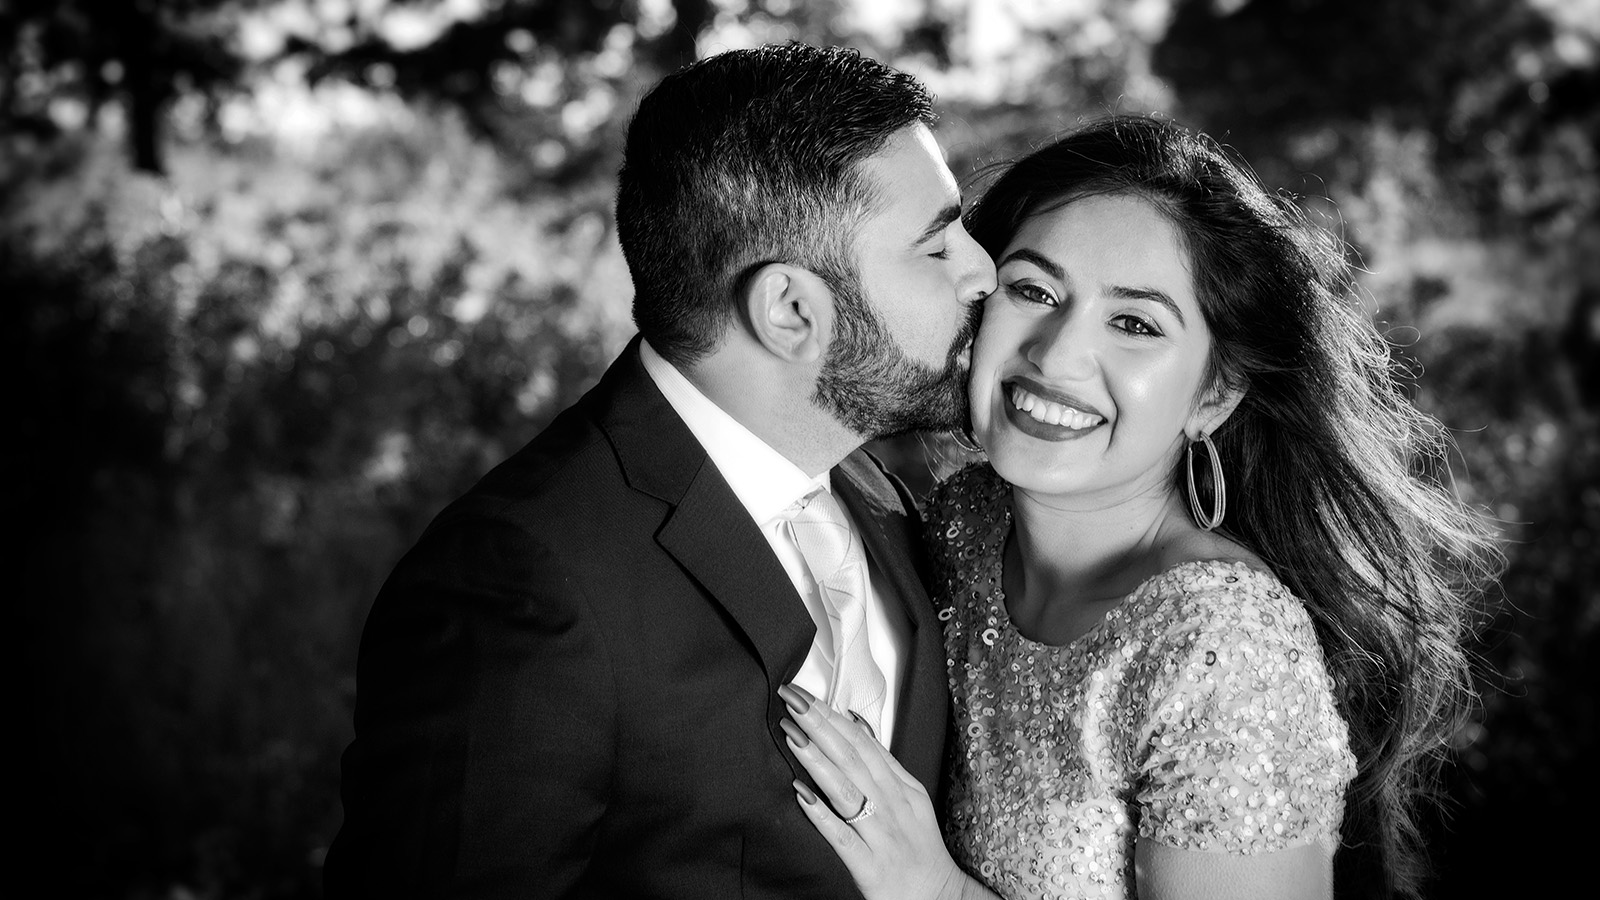 Pakistani Indian Engagement Photo in Black and White